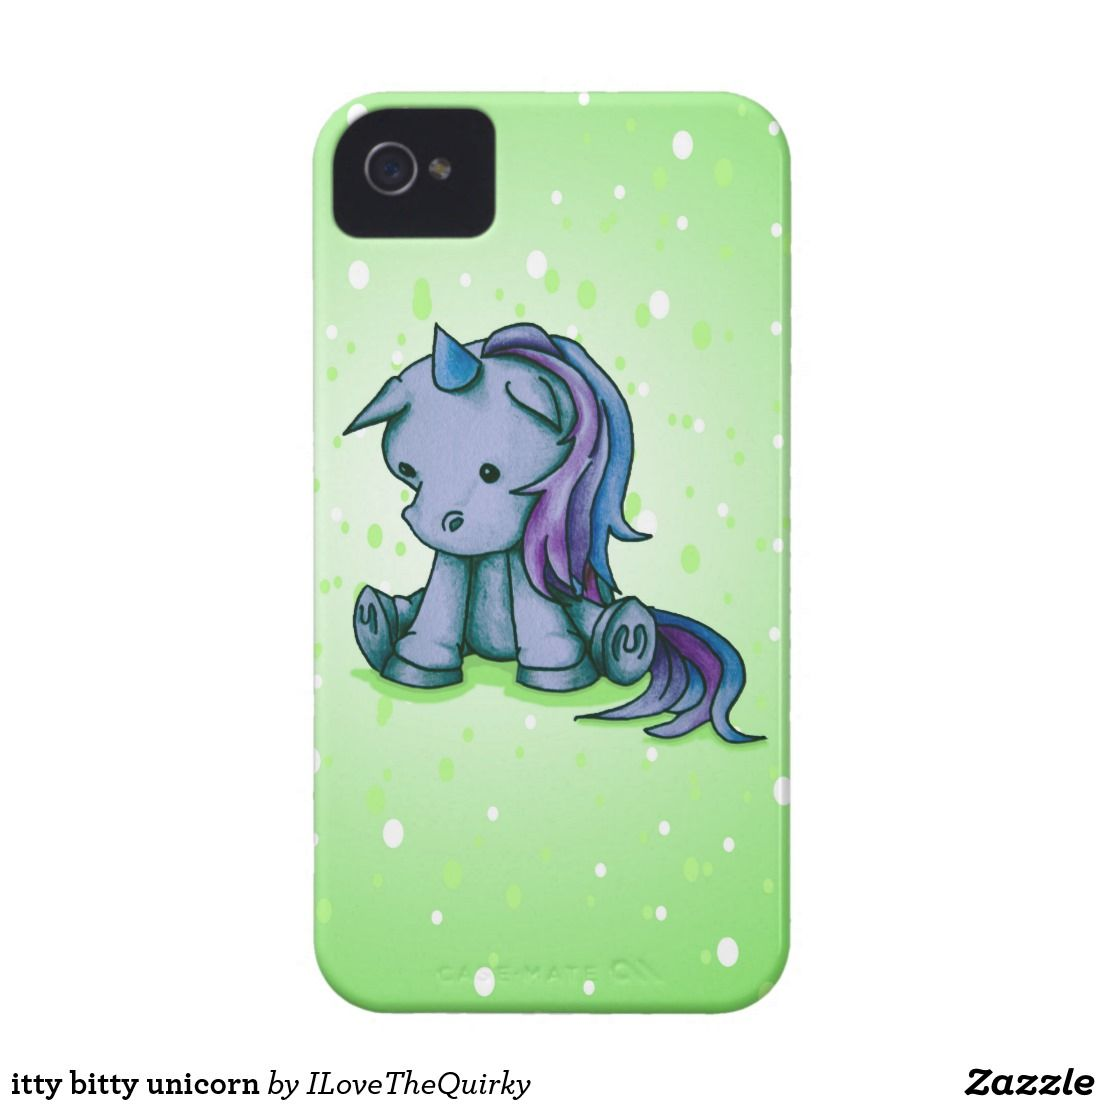 Unicorn iPhone Cases & Covers Zazzle